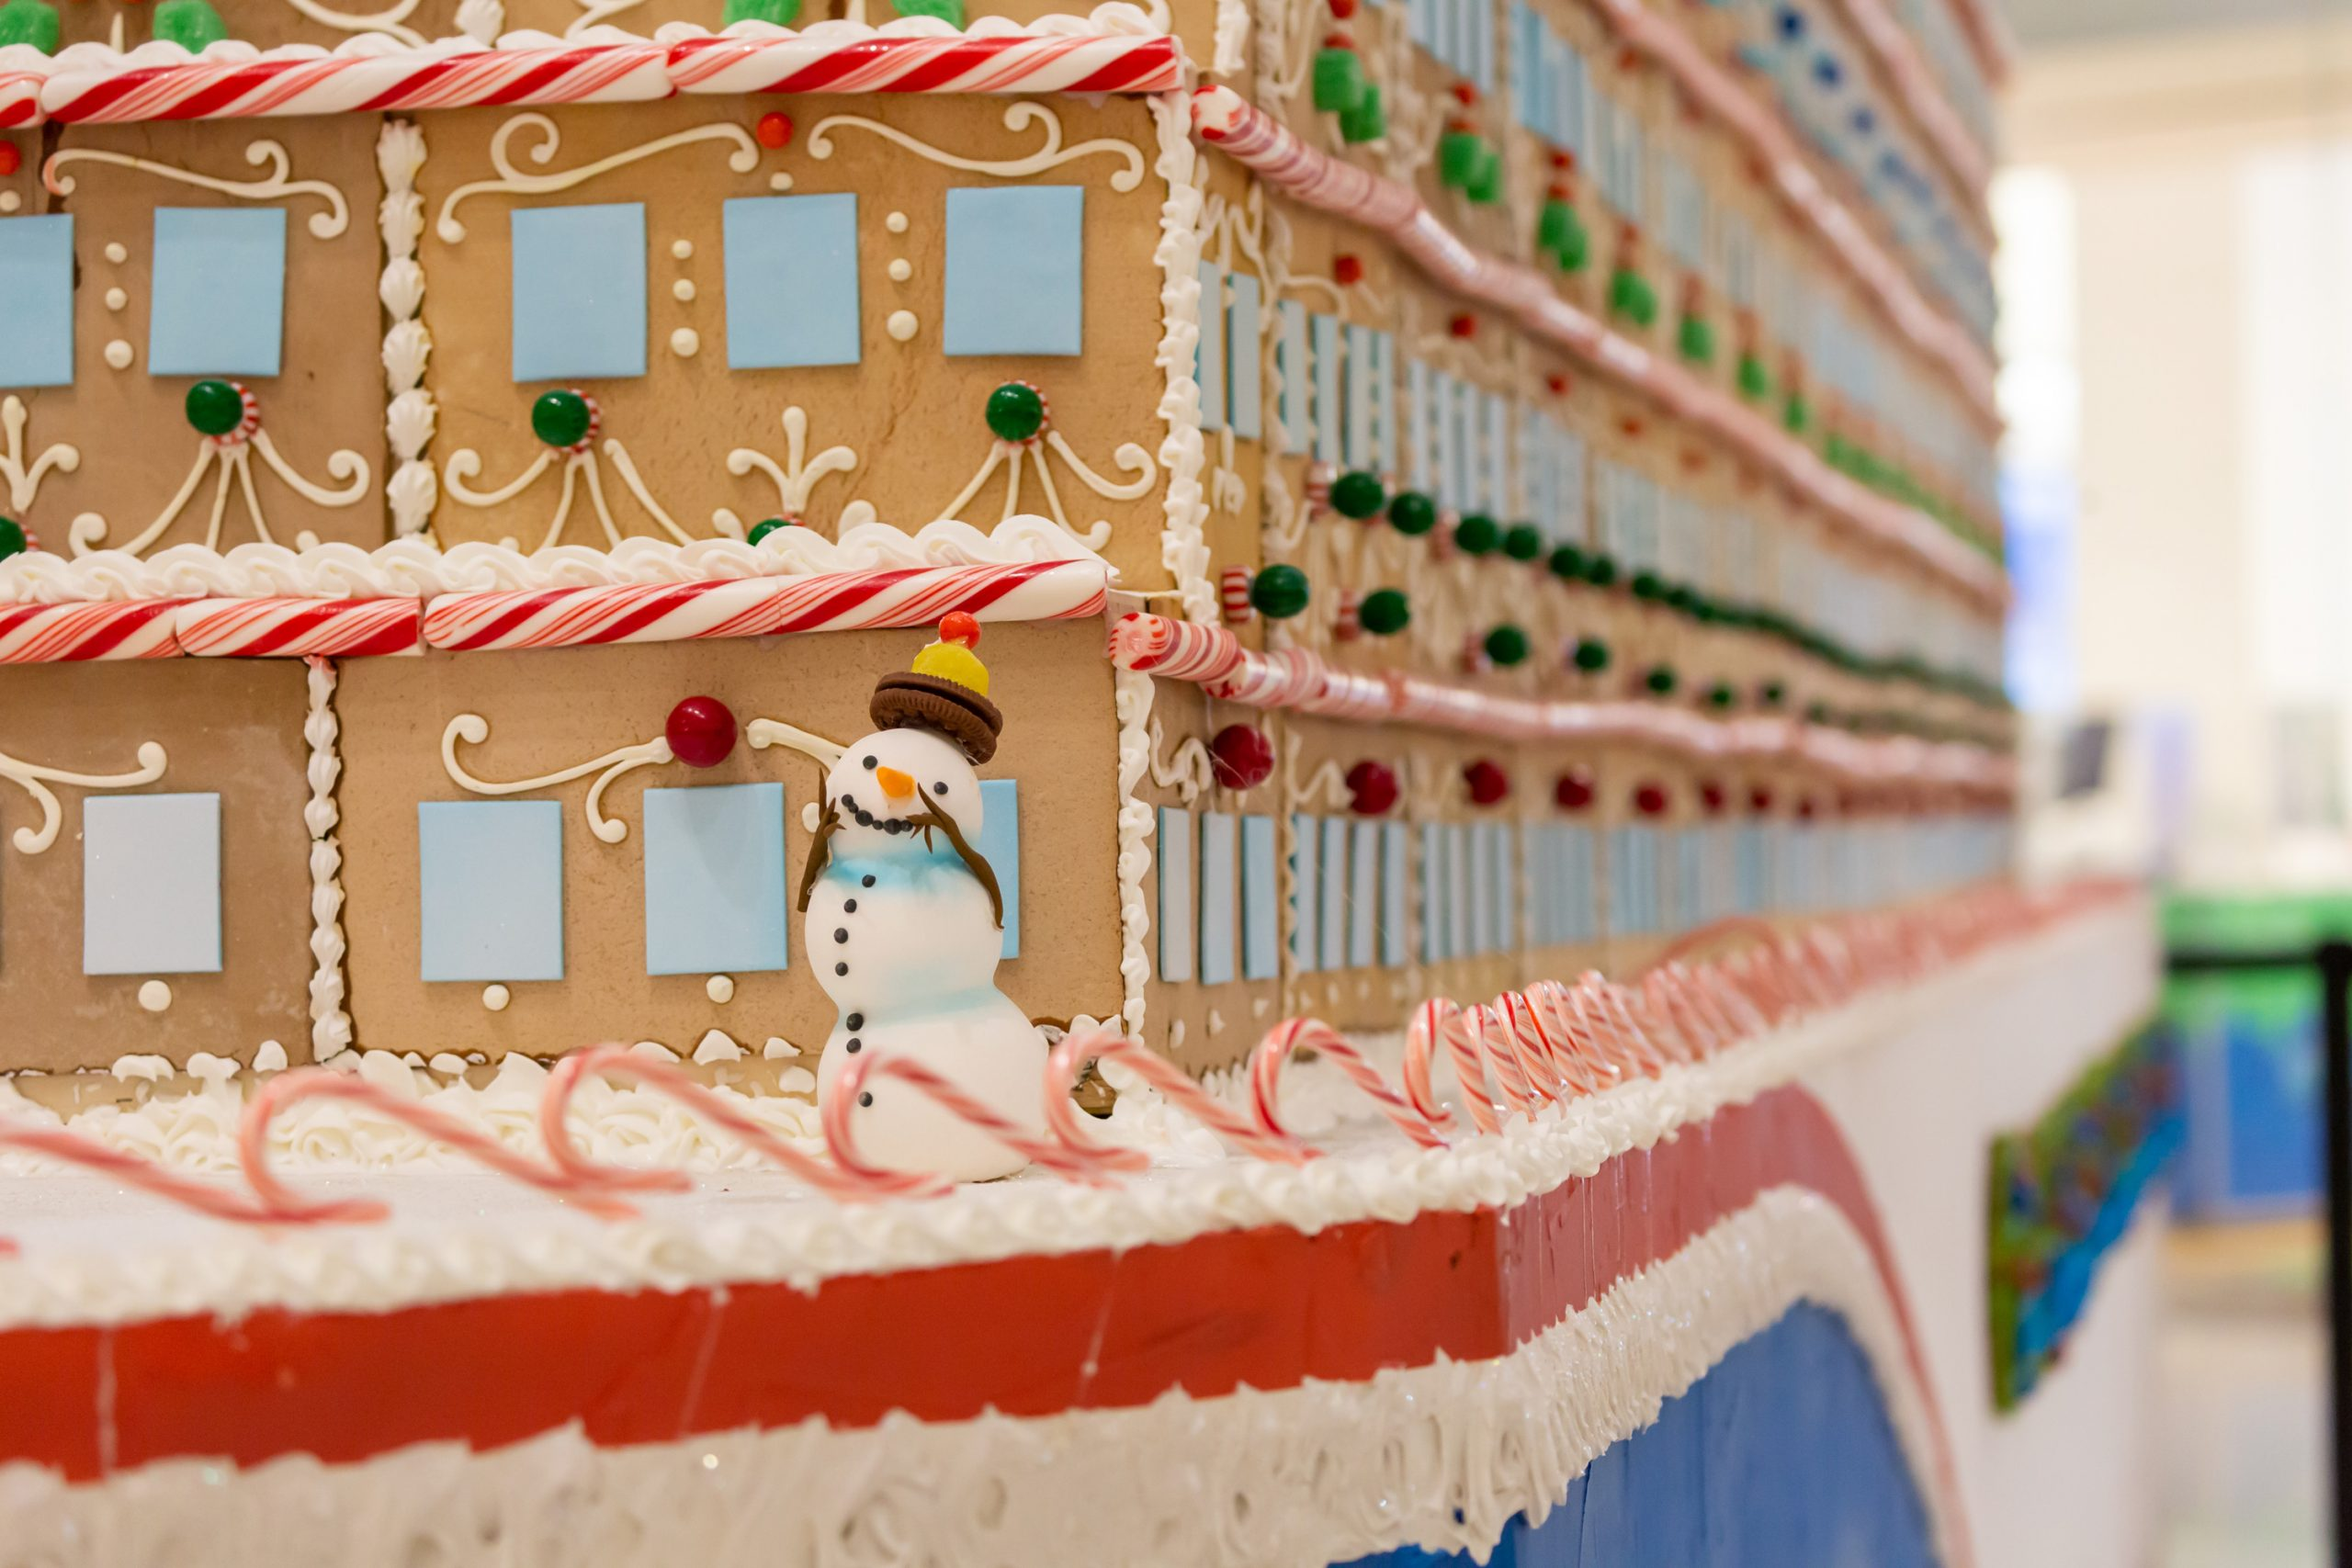 Massive Gingerbread Cruise Ship Modeled After Carnival Cruise Line's New Mardi Gras 'Docks' at Atlanta Mall